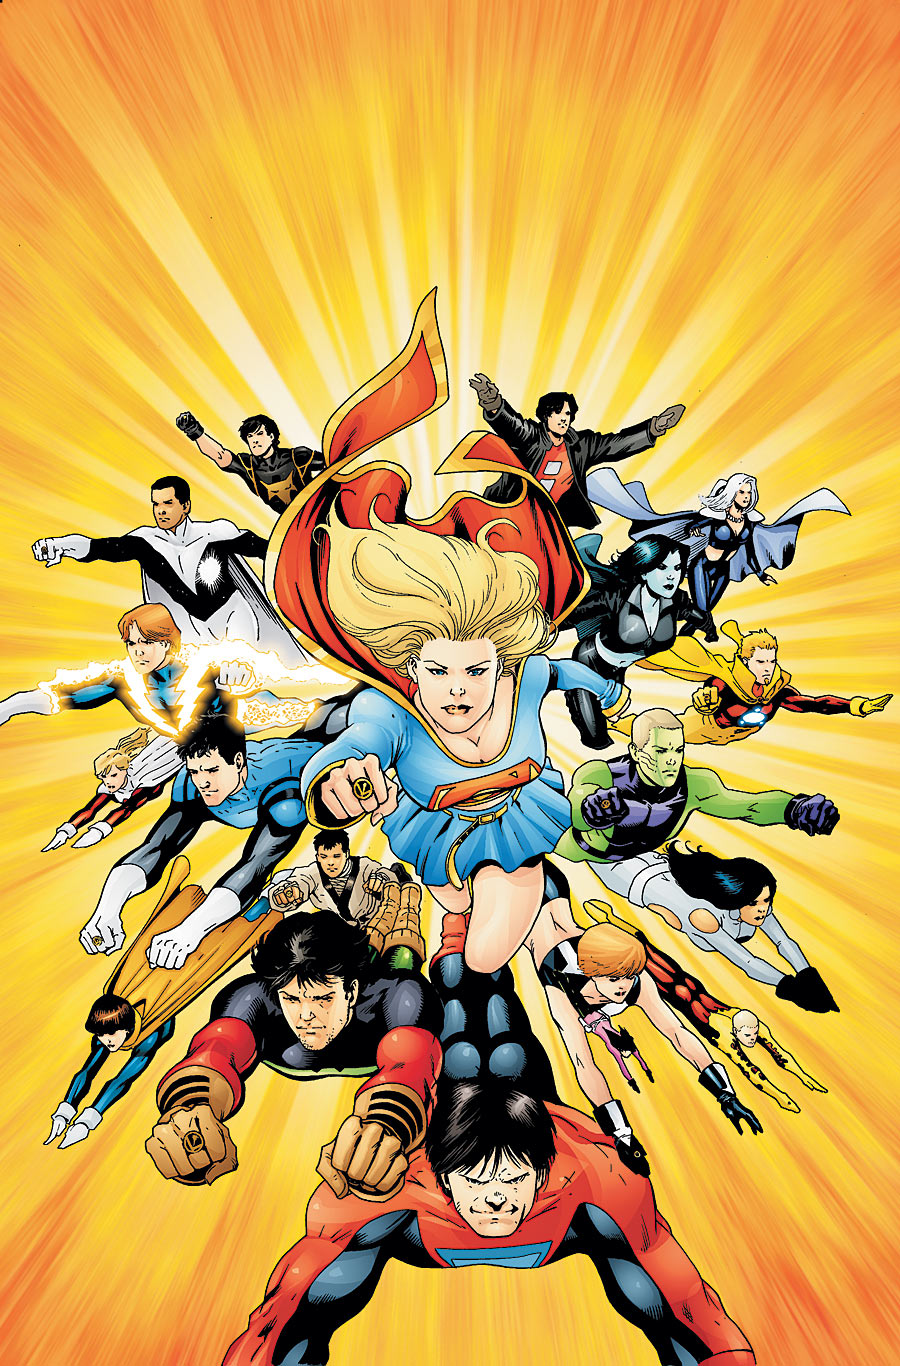 Supergirl and the Legion of Super-Heroes Vol 1 31 Textless.jpg